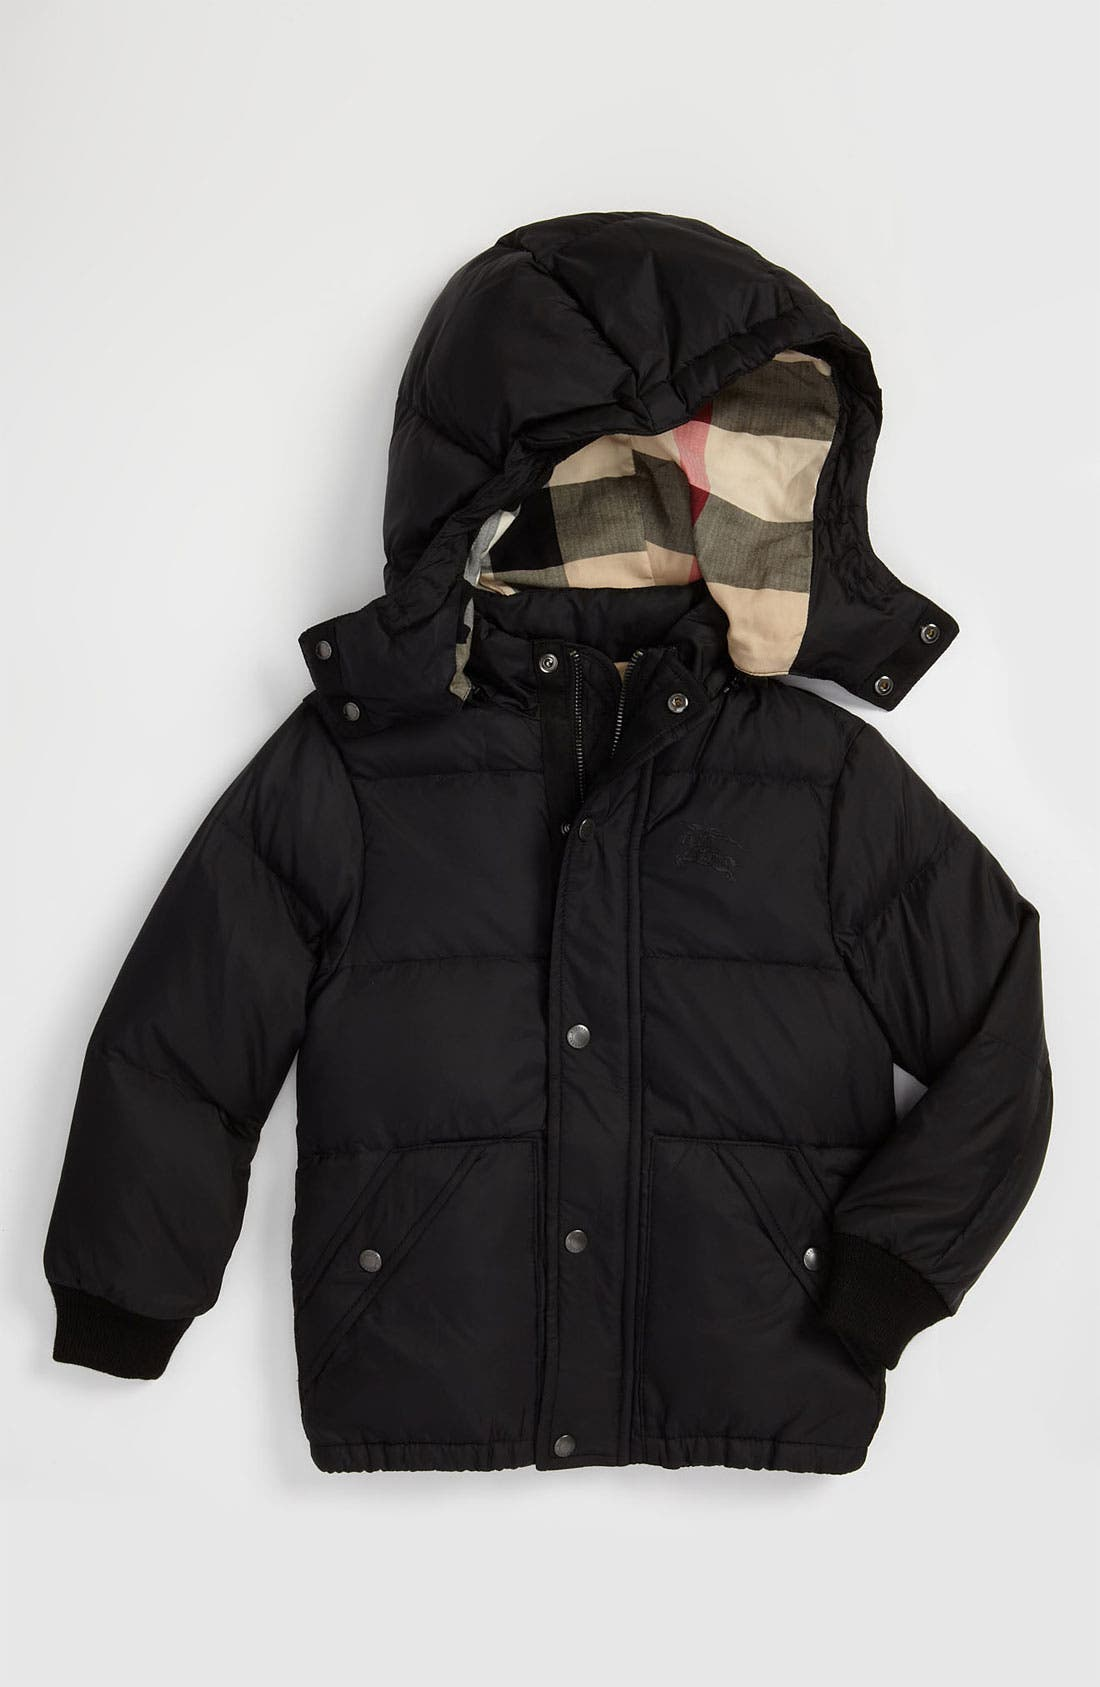 Alternate Image 1 Selected - Burberry Down Filled Puffer Jacket (Big Boys)